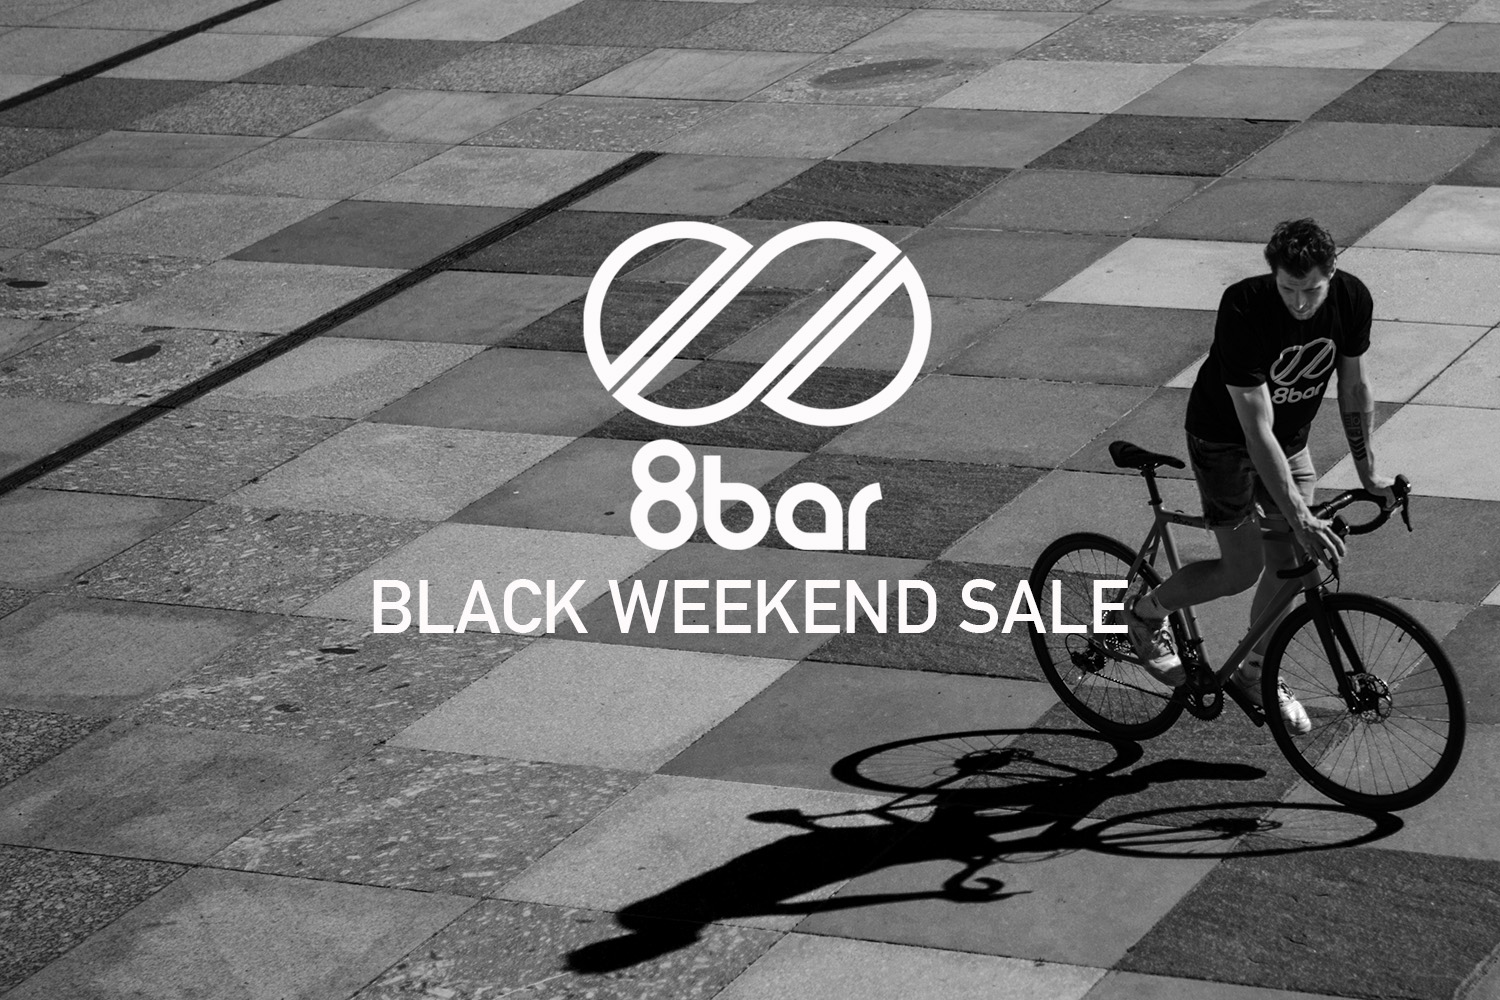 8bar black weekend sale blog fb - Black Weekend Sale - 25% OFF